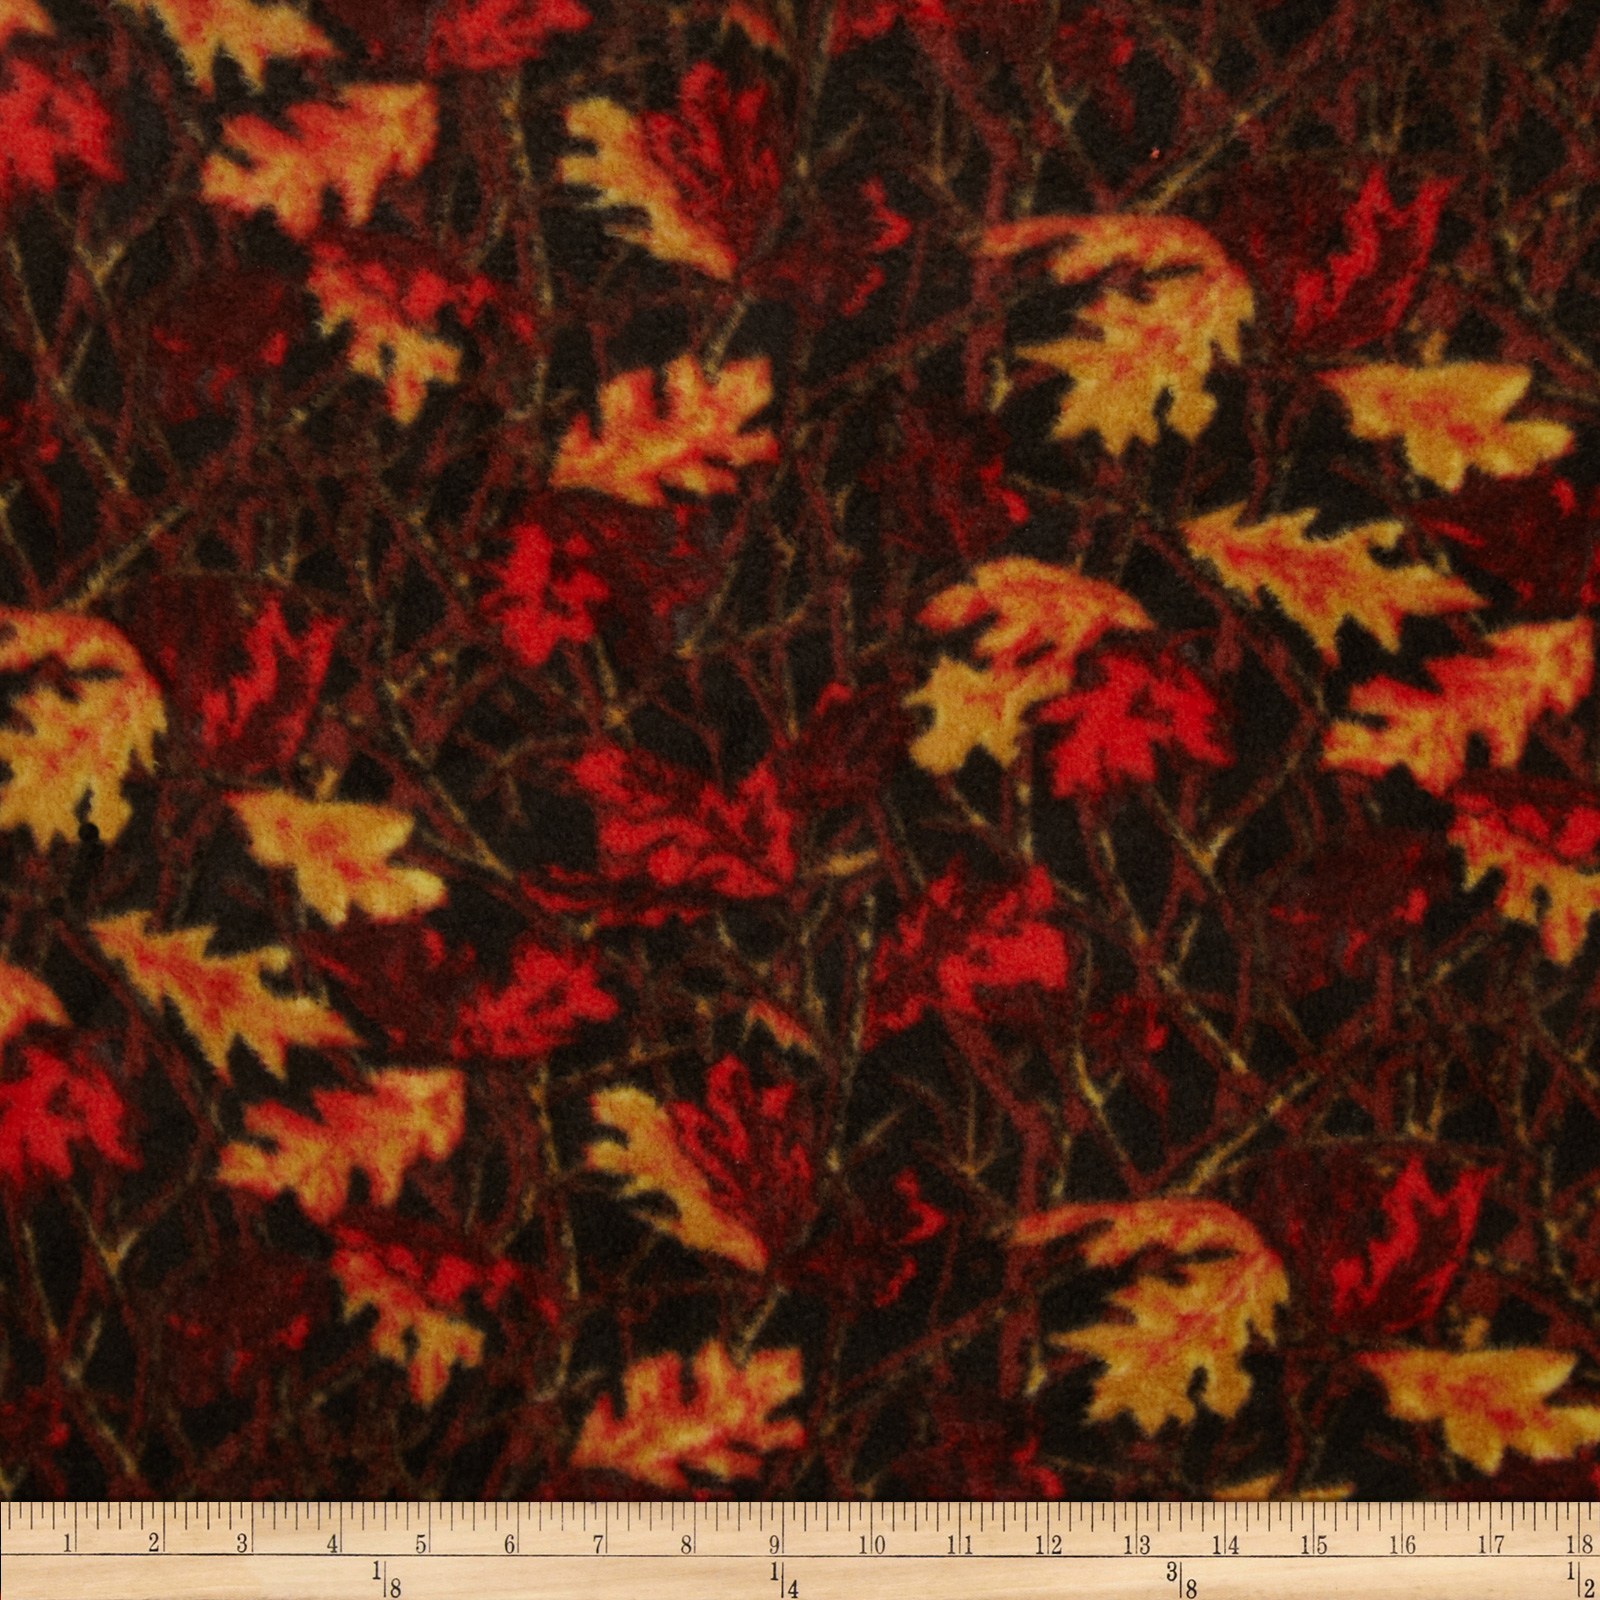 Fleece Leaves Red/Gold/Brown Fabric by Eugene in USA